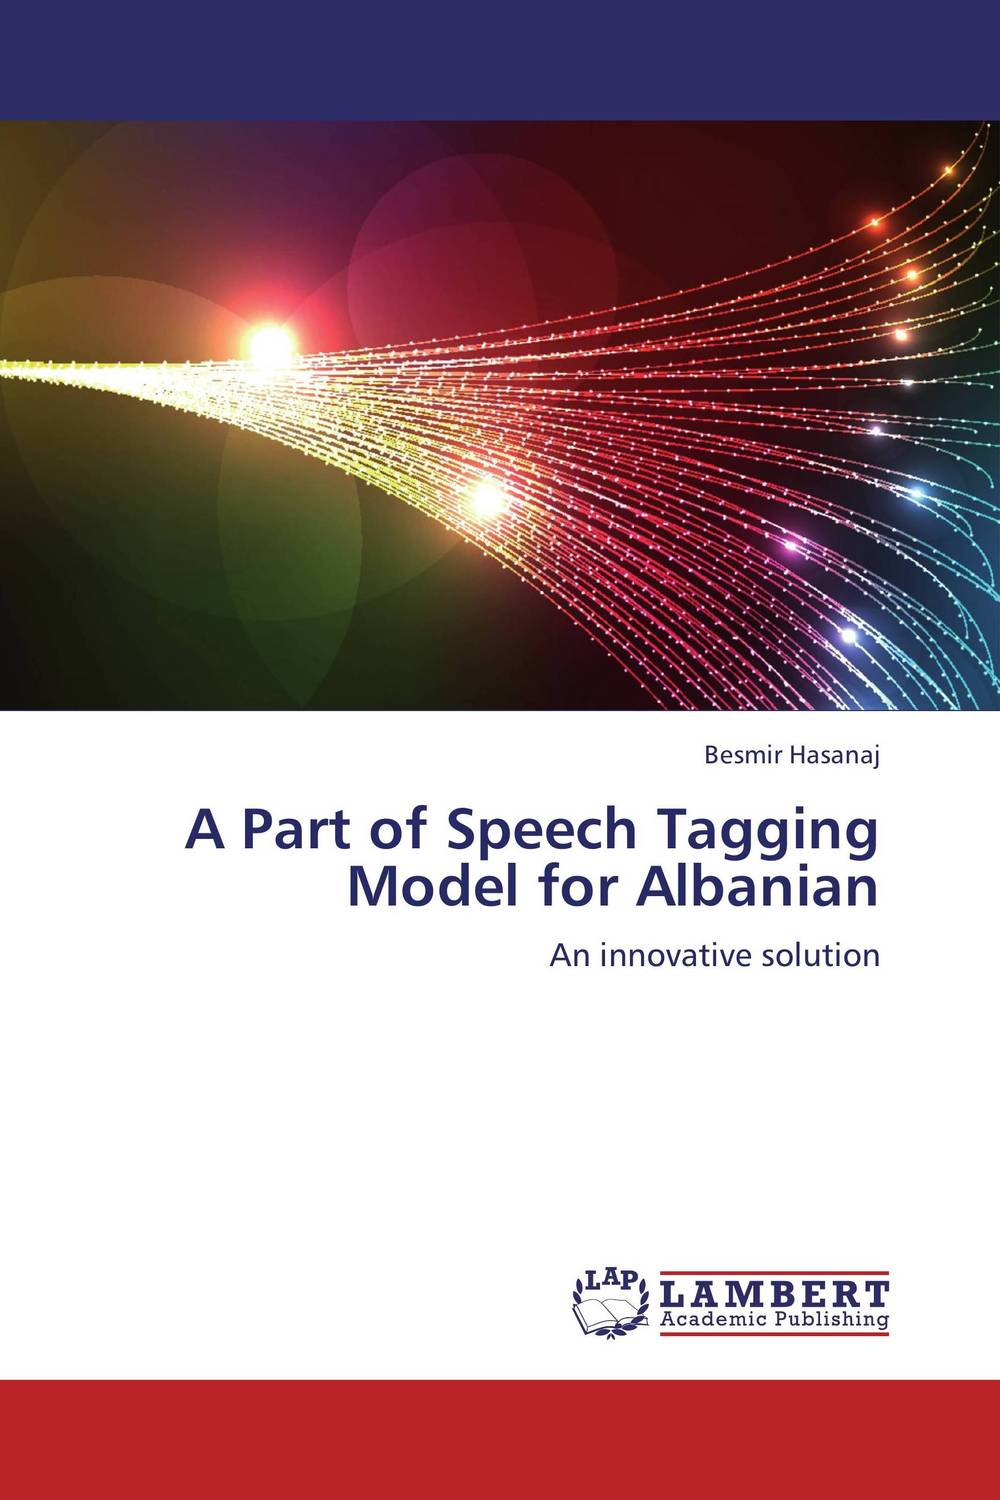 A Part of Speech Tagging Model for Albanian molecular tagging